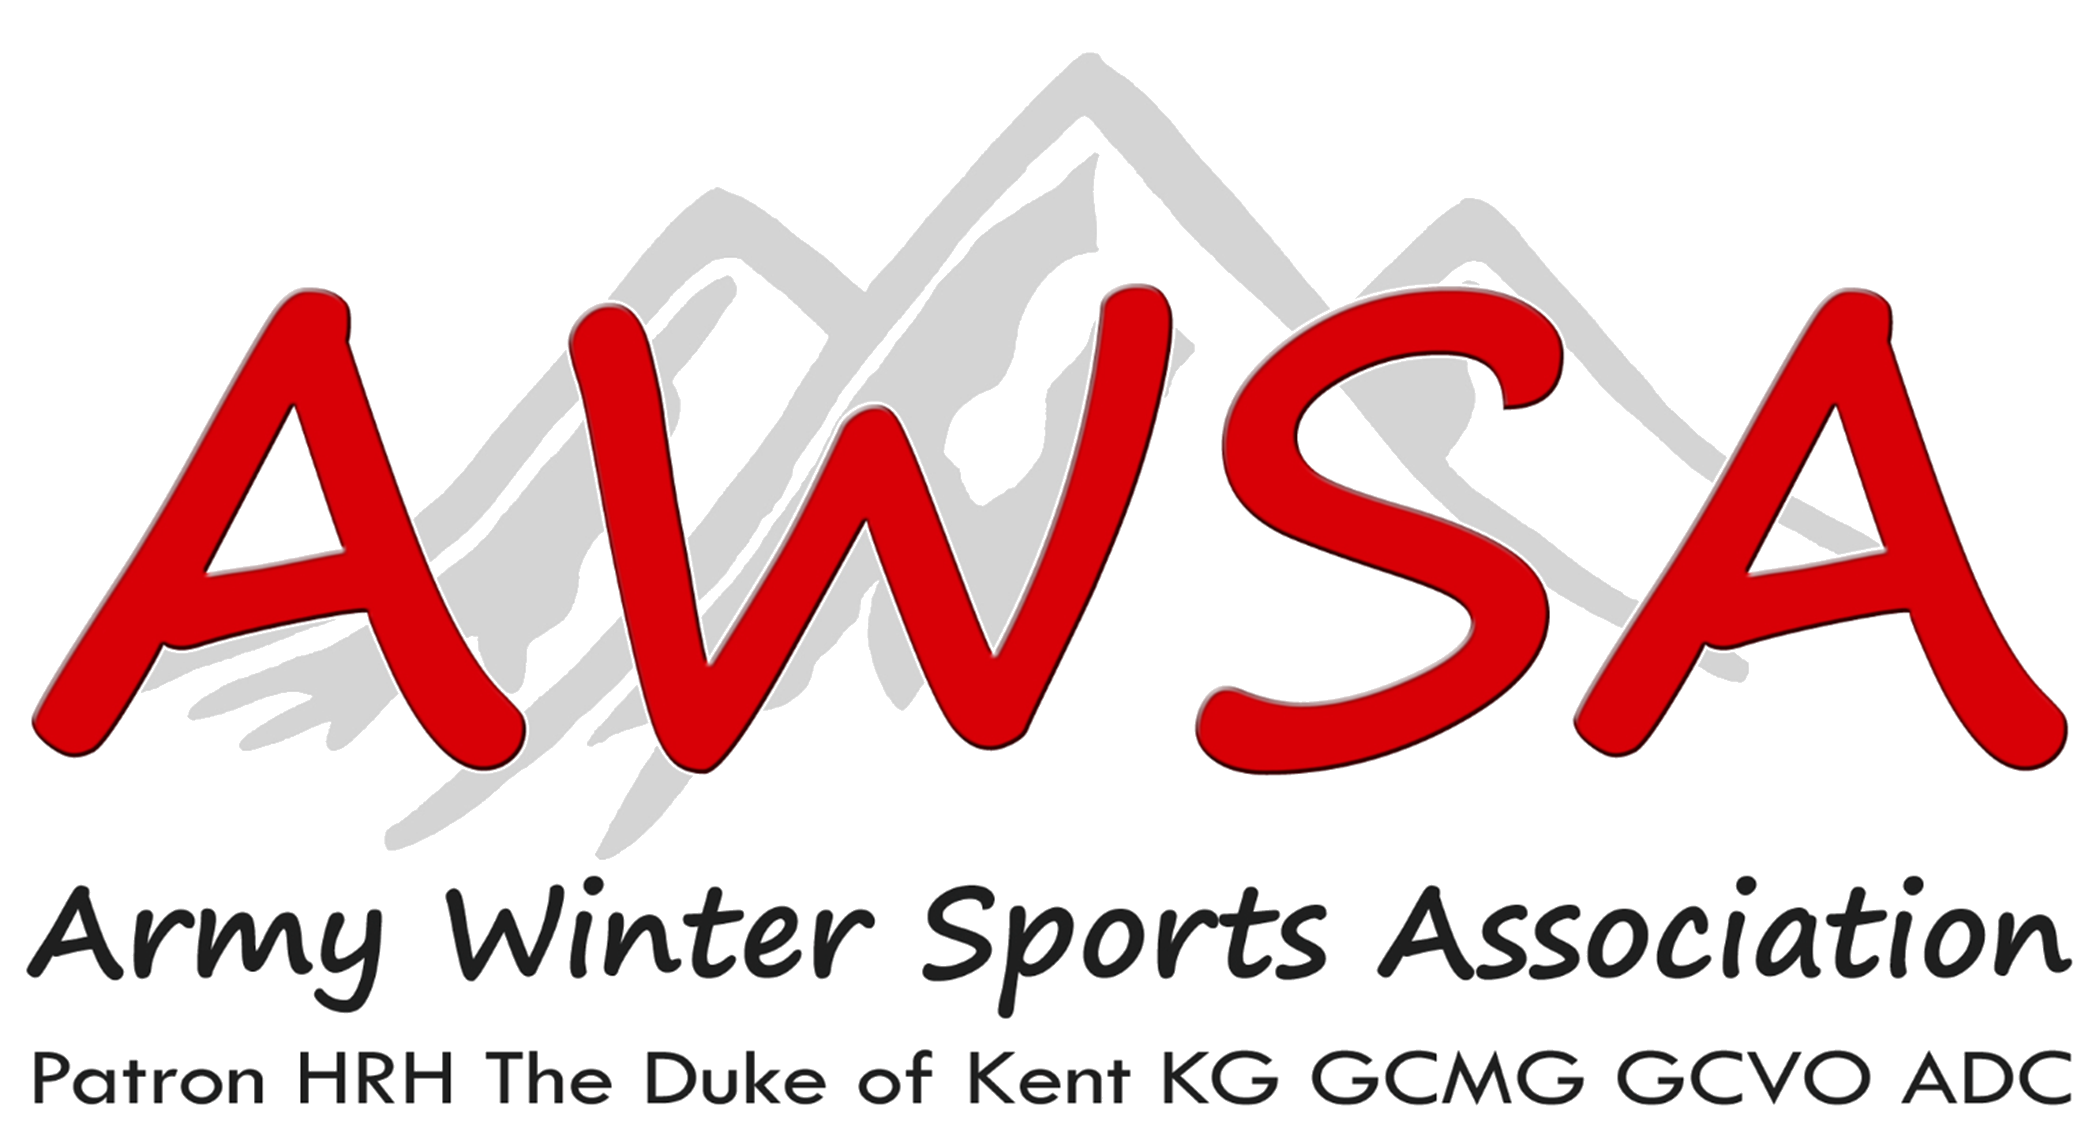 Army Winter Sports Association